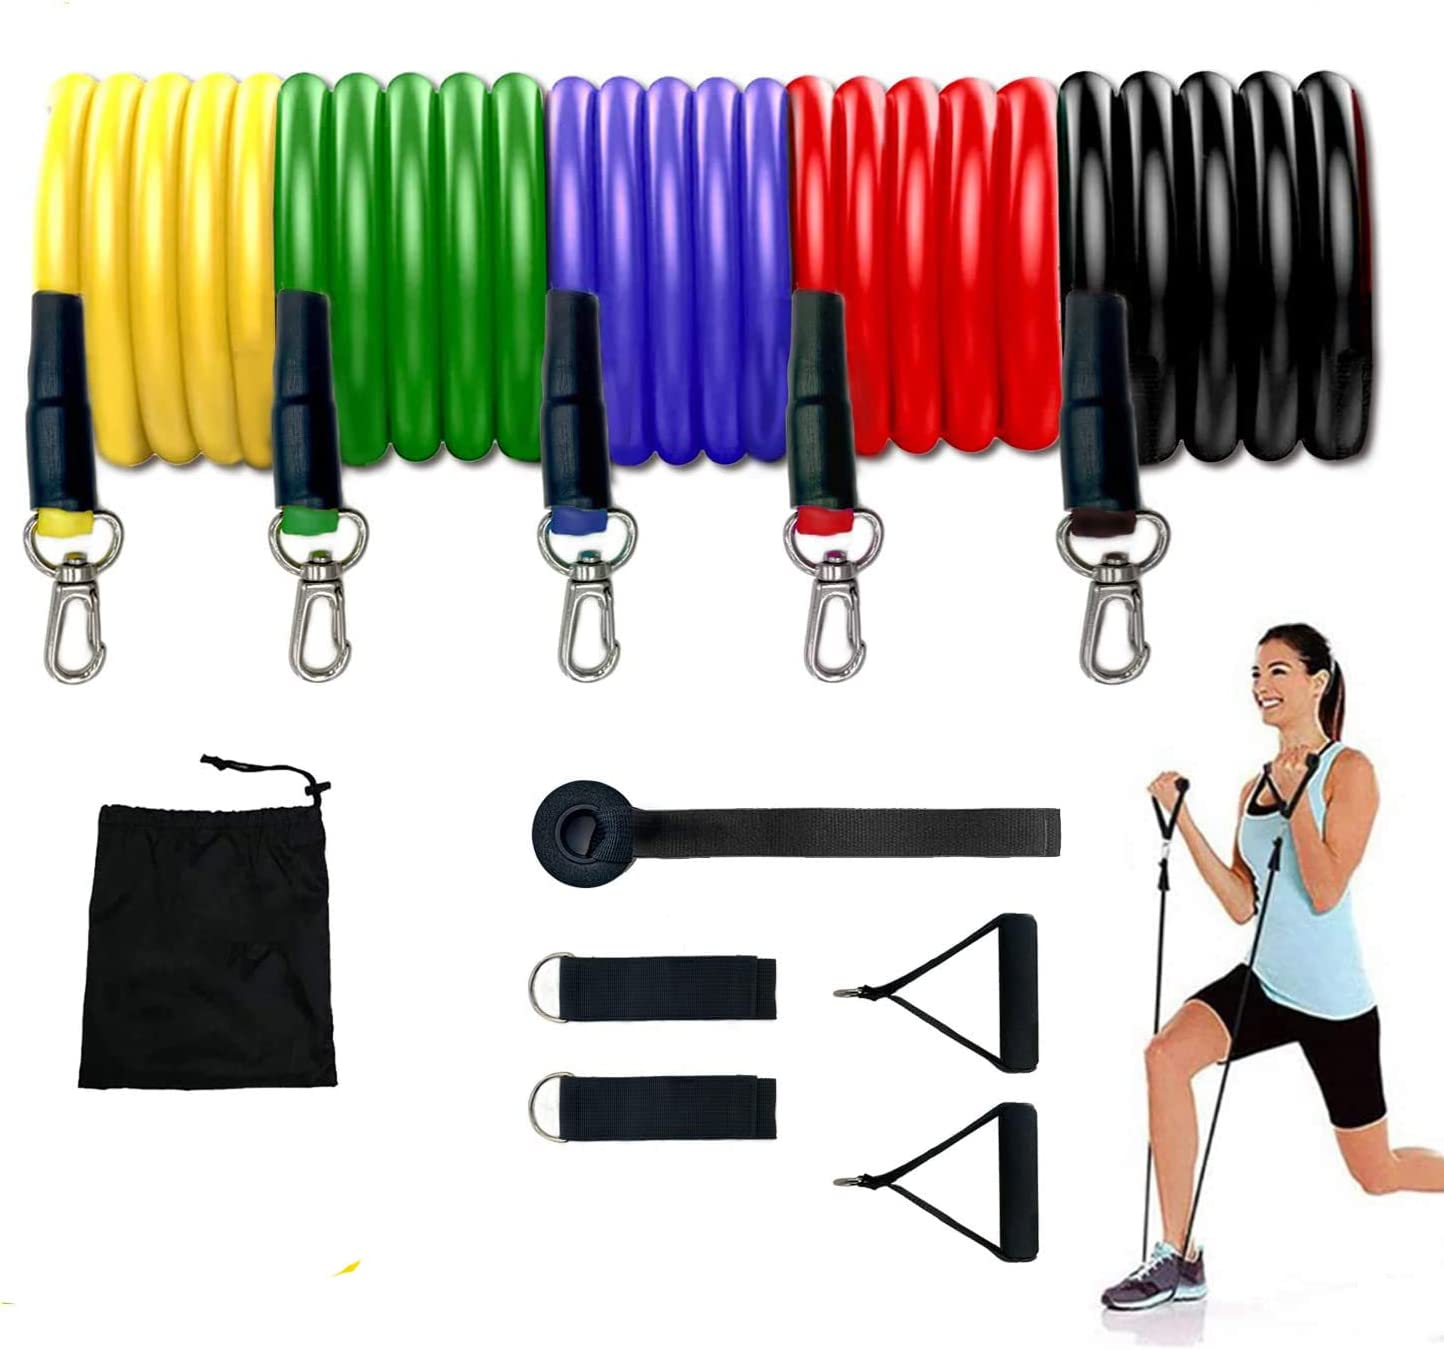 QDWLY Resistance Bands Set - 5-Piece Exercise Bands - Portable Home Gym Accessories - Stackable Up to 100 lbs. - Perfect Muscle Builder for Arms, Back, Leg, Chest, Belly, Glutes